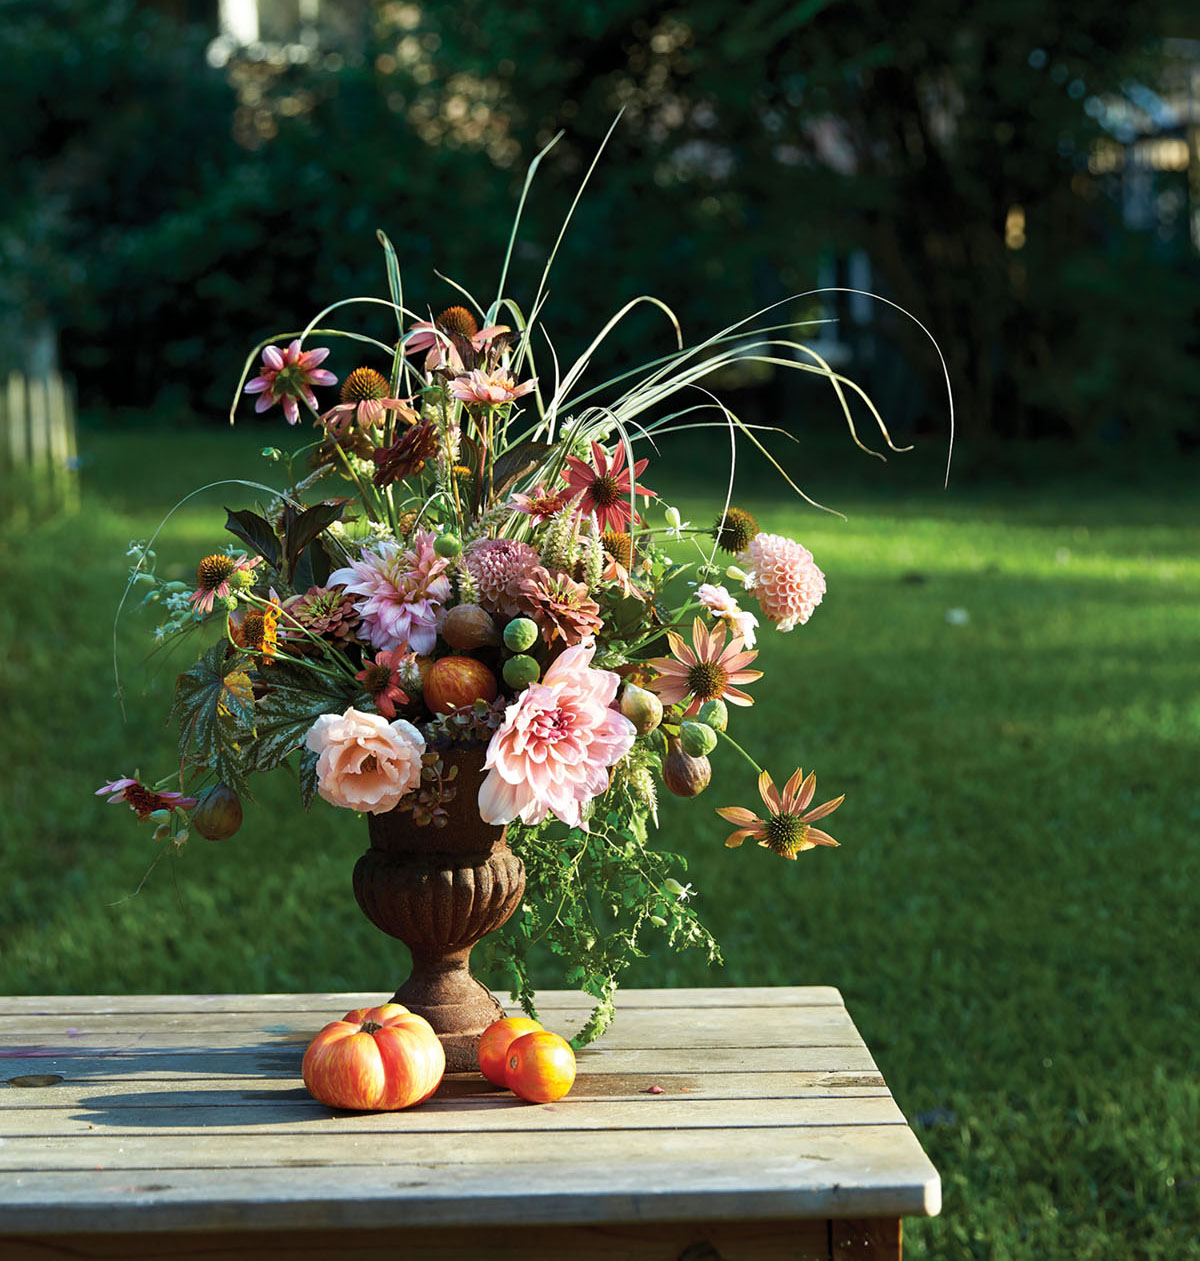 peach, pink, green, and rust-colored summer arrangement by Birmingham, AL floral designer Kappi Naftel of Kap Flowers. The vessel is a rust-colored urn, which sits on a picnic table alongside summer tomatoes, with an expanse of green lawn in the background